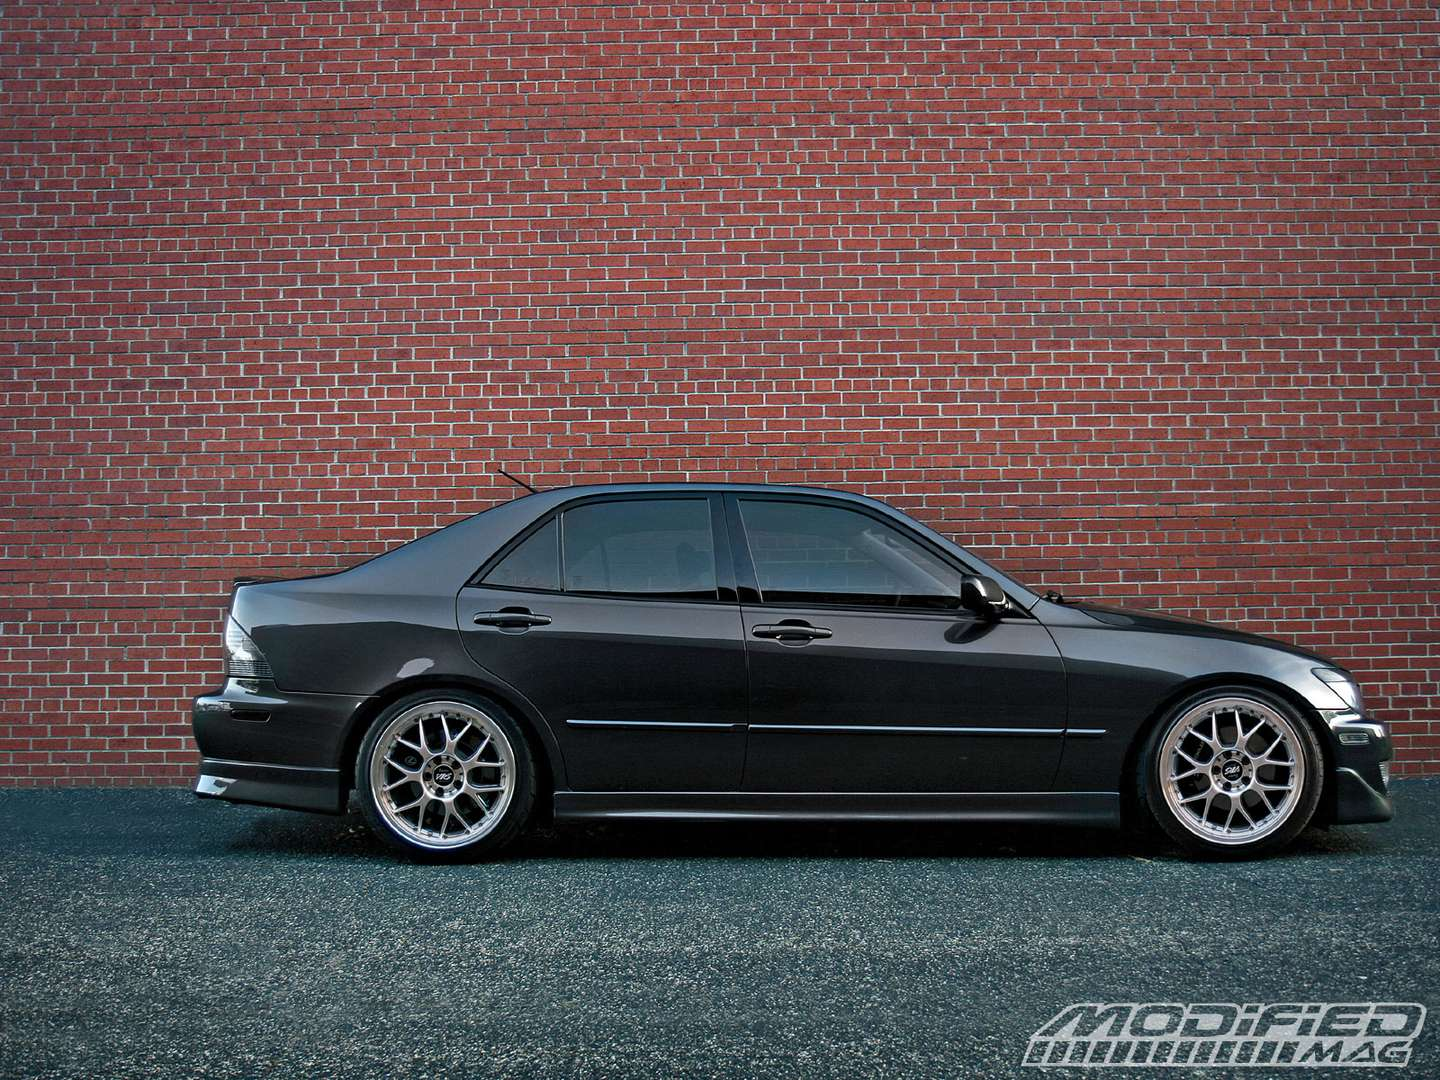 Lexus IS300 #8307456